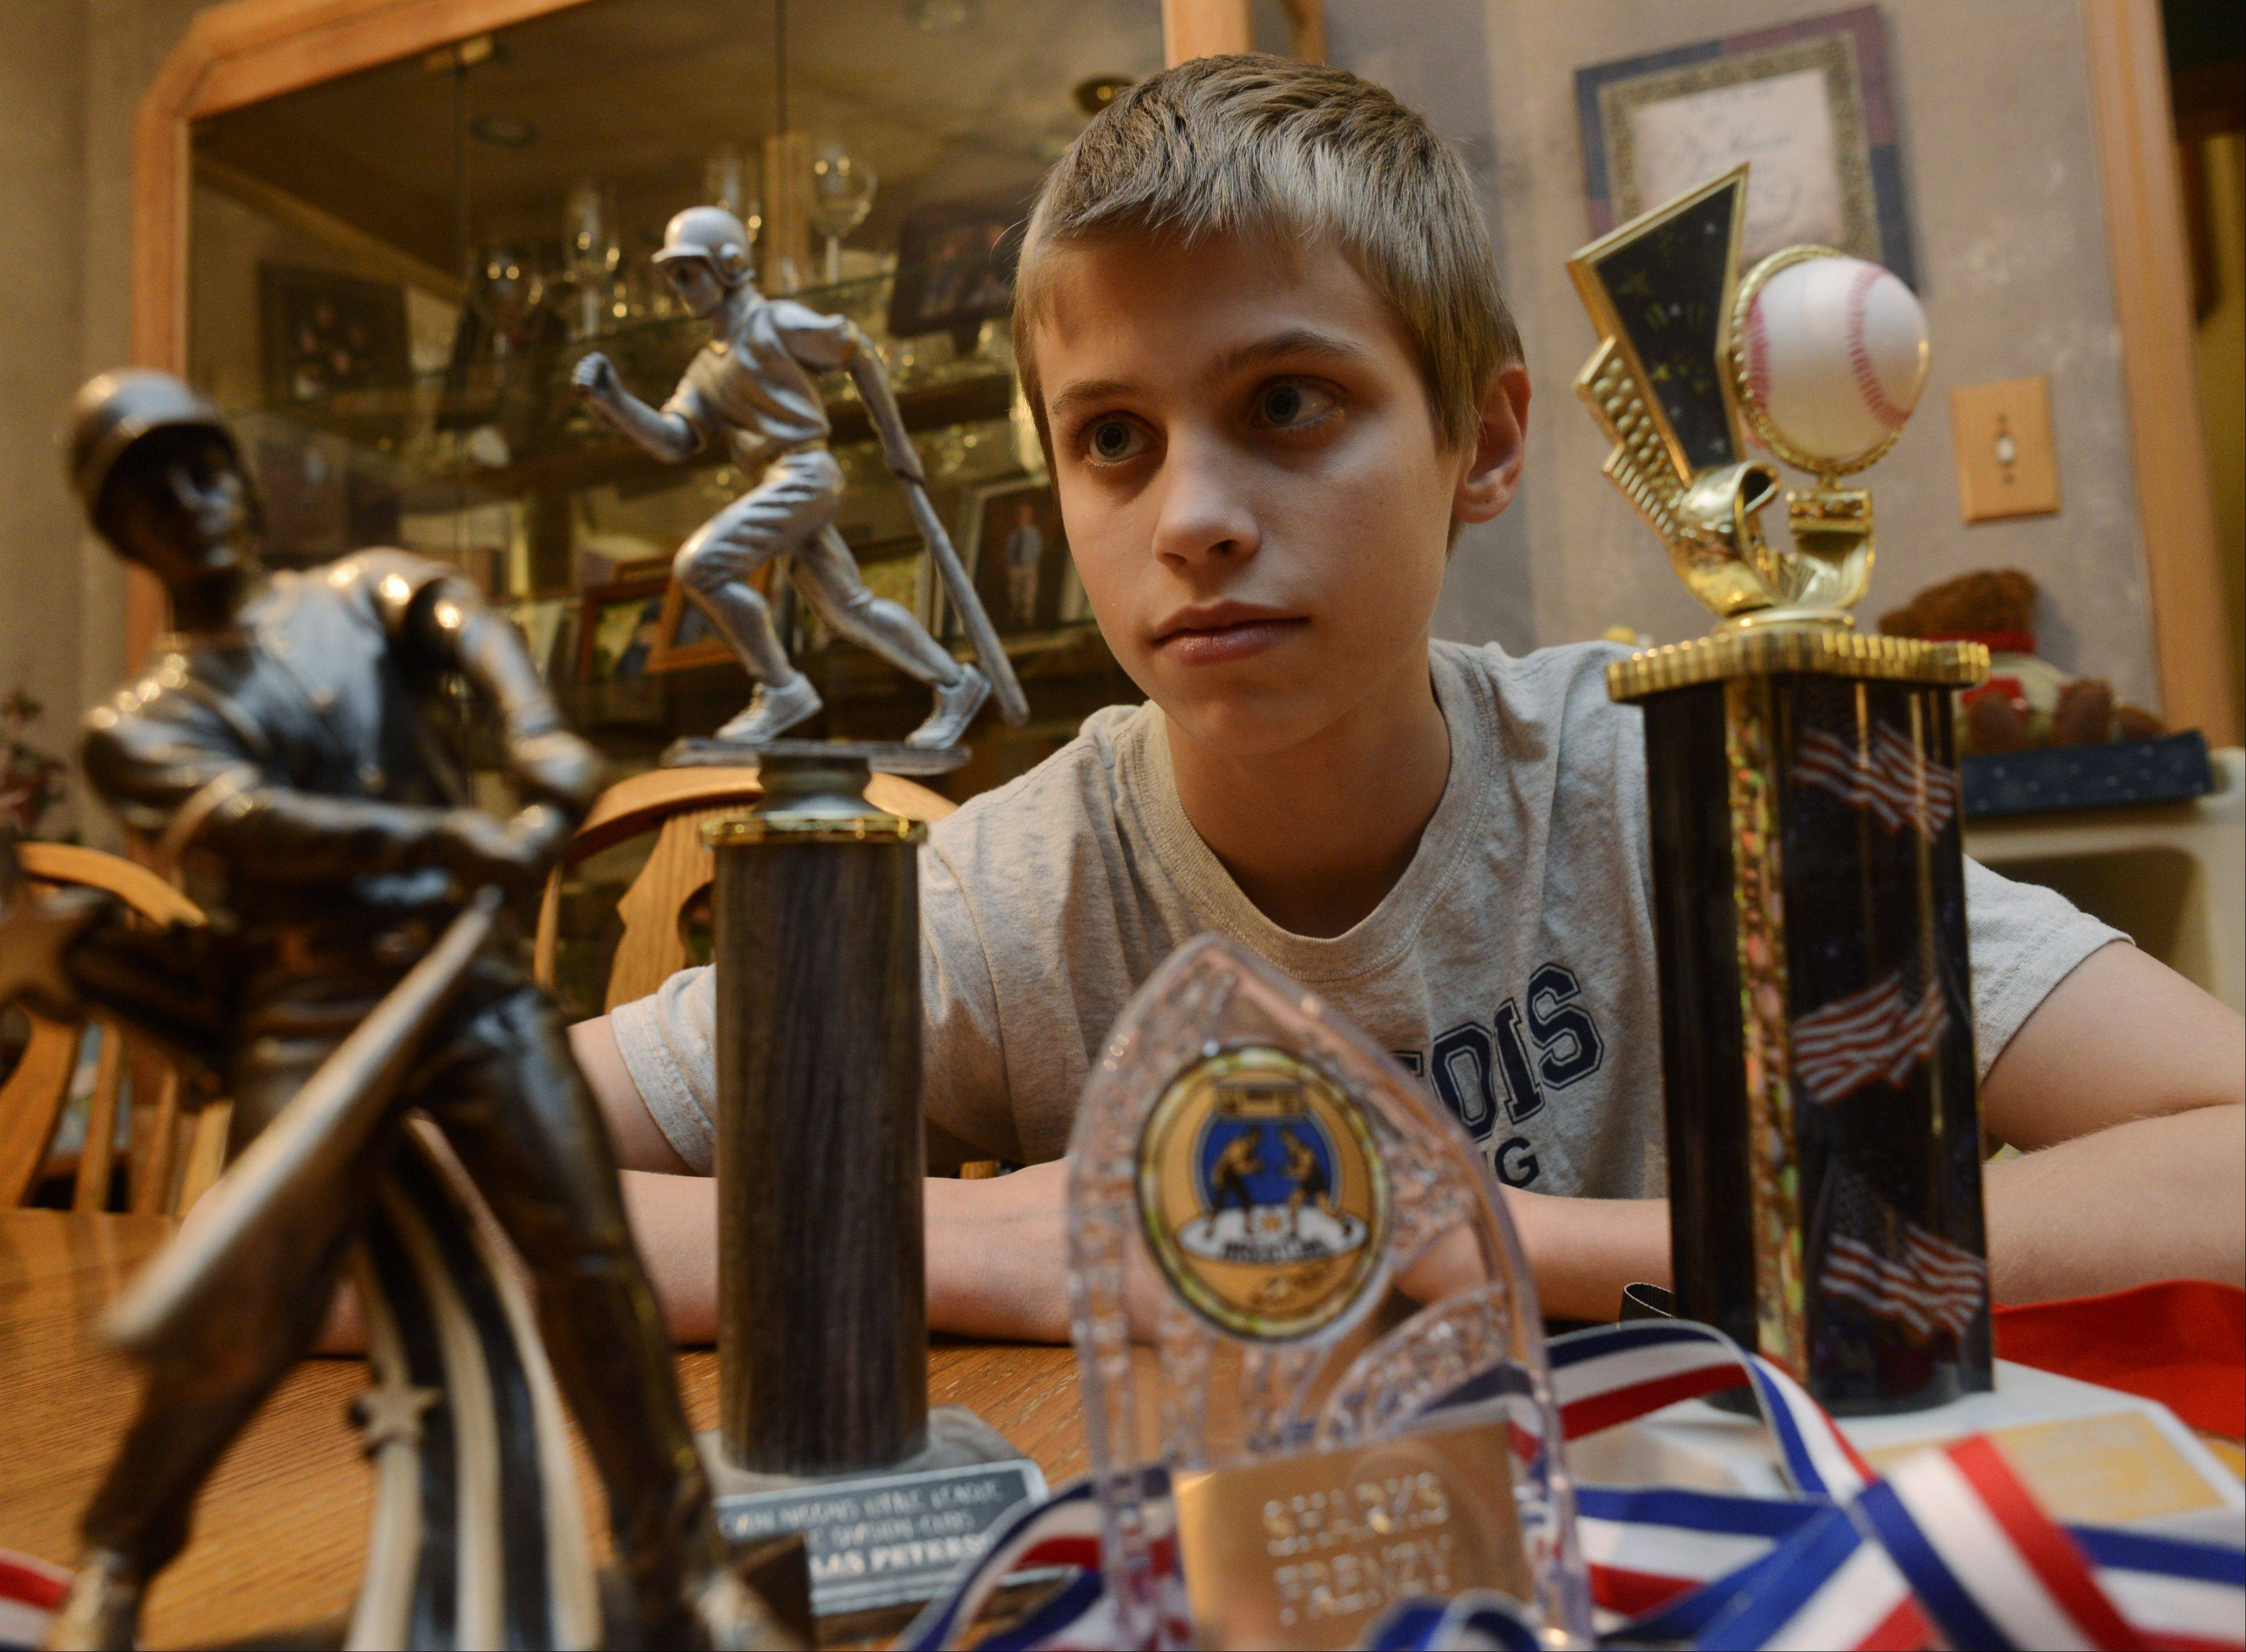 Nick Peterson of Des Plaines is a home-schooled student in Maine Township District 207 who wants to compete on Maine West's wrestling and baseball teams. District rules currently prohibit home-schooled students from taking part in interscholastic athletics, but Nick's parents are urging the school board to allow him to compete.